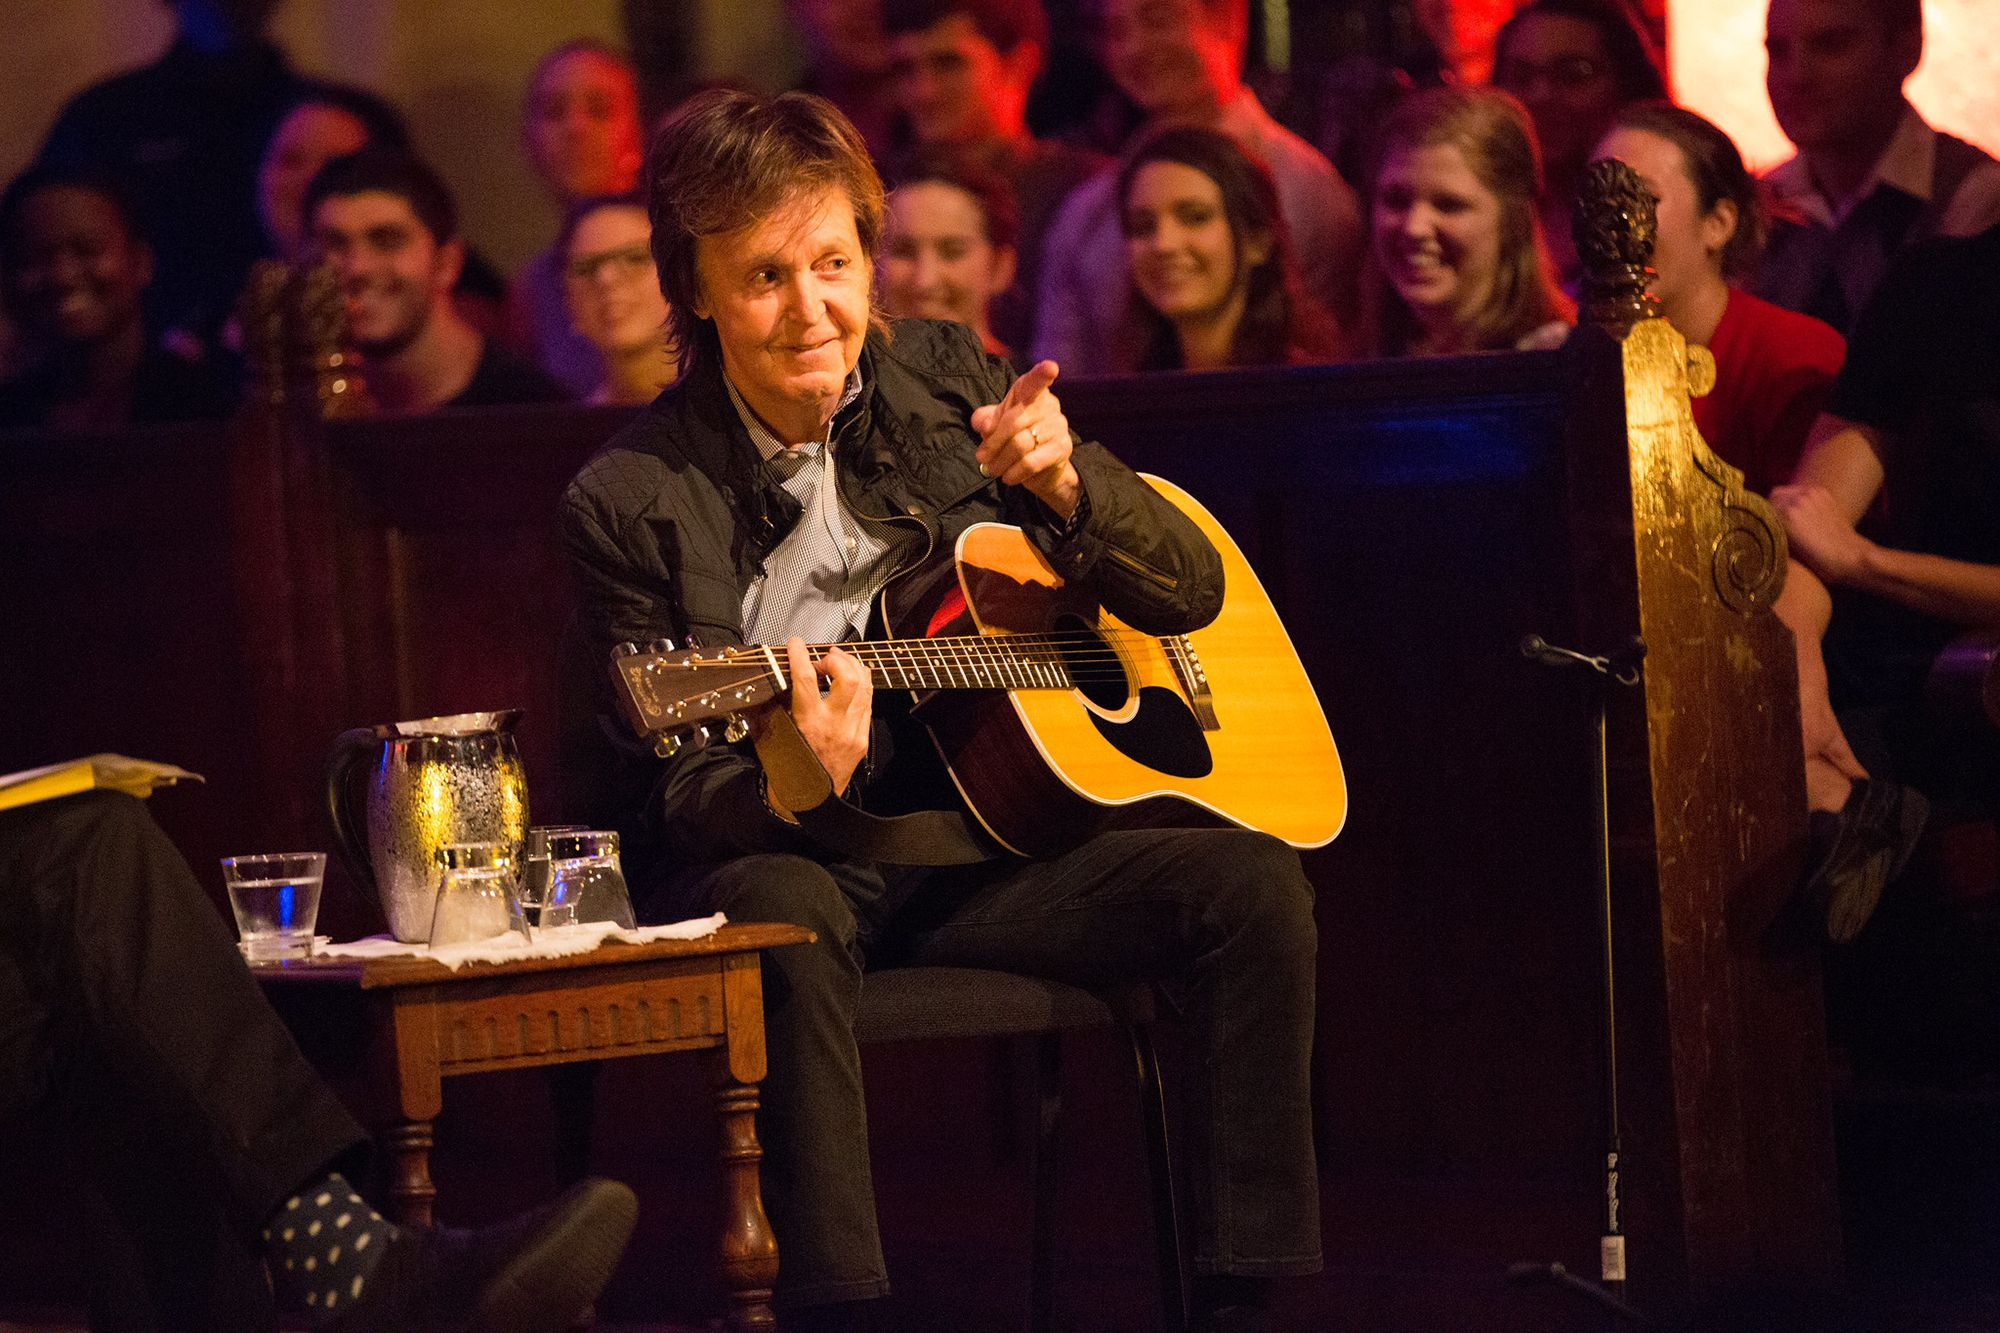 Sir Paul McCartney points to the crowd during a performance at Rollins College.